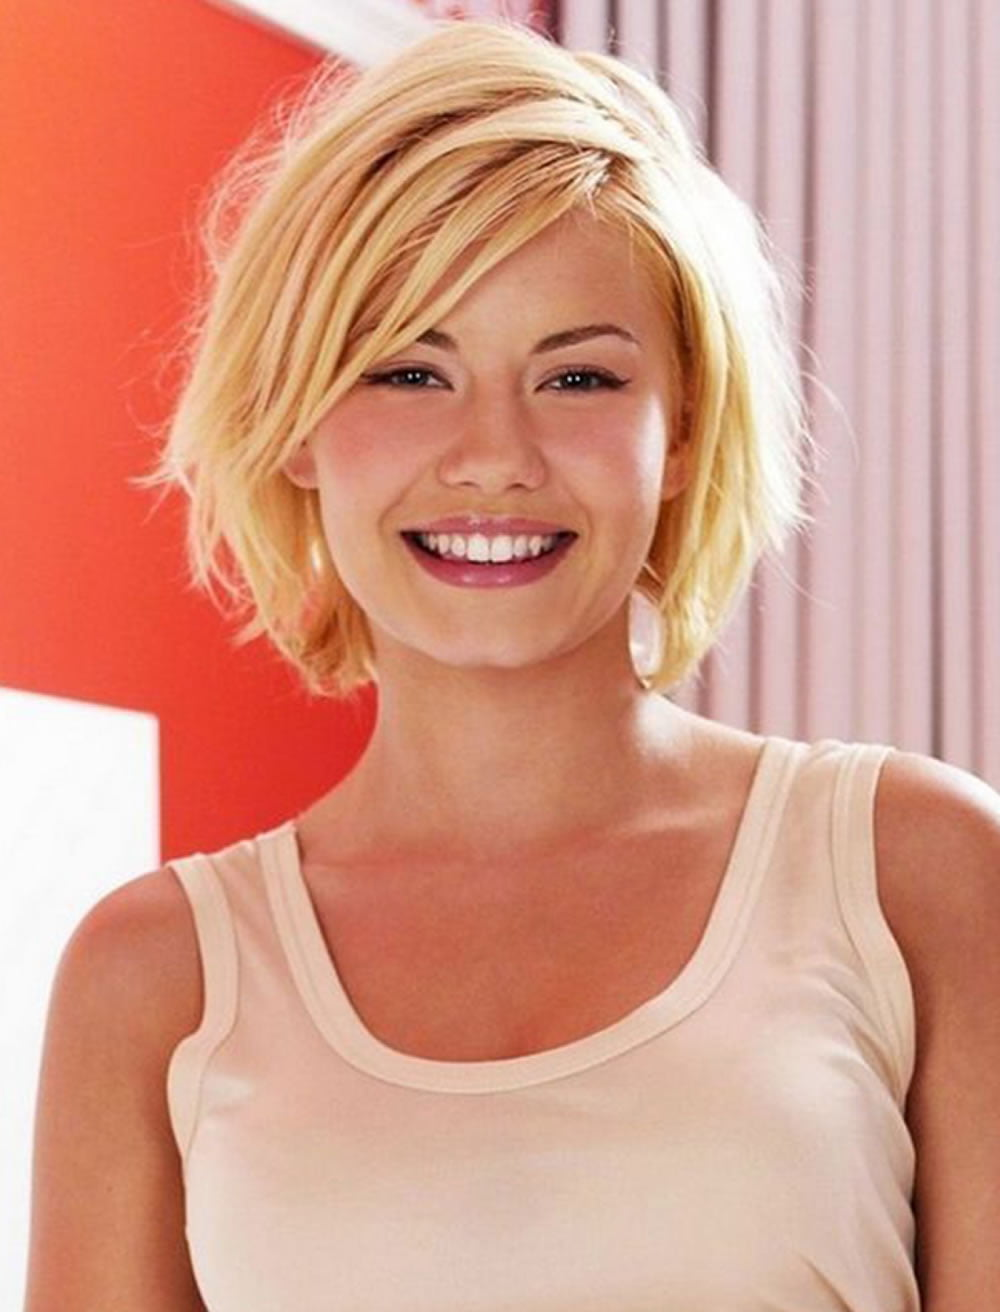 The Best 33 Short Bob Haircuts 2019 Short Hairstyles For Women